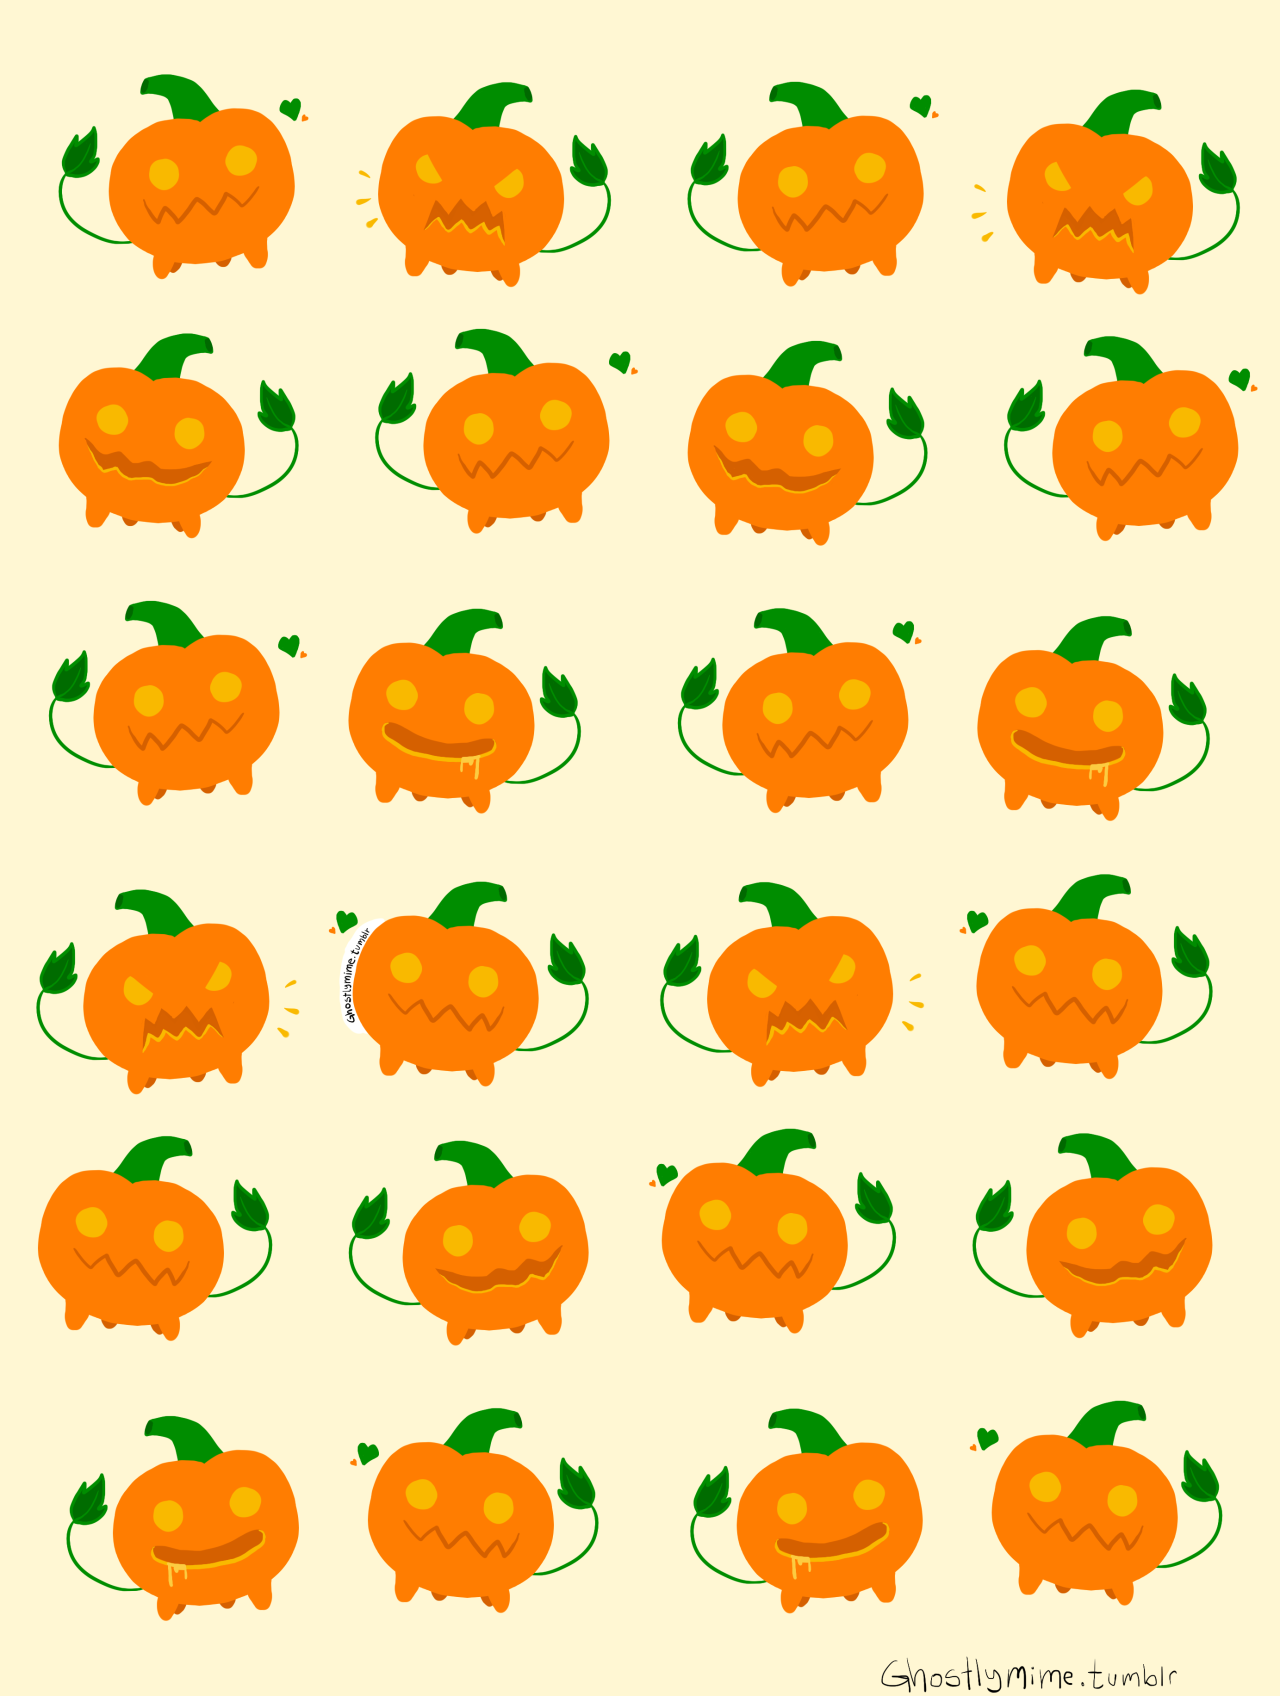 I love pumpkin dog soooooo much !!!! I made a pumpkin dog wallpaper! you can use it if you want!  (don't forget to credit me) please don't reupload my art or sell it, don't do that!… reblogs are okay